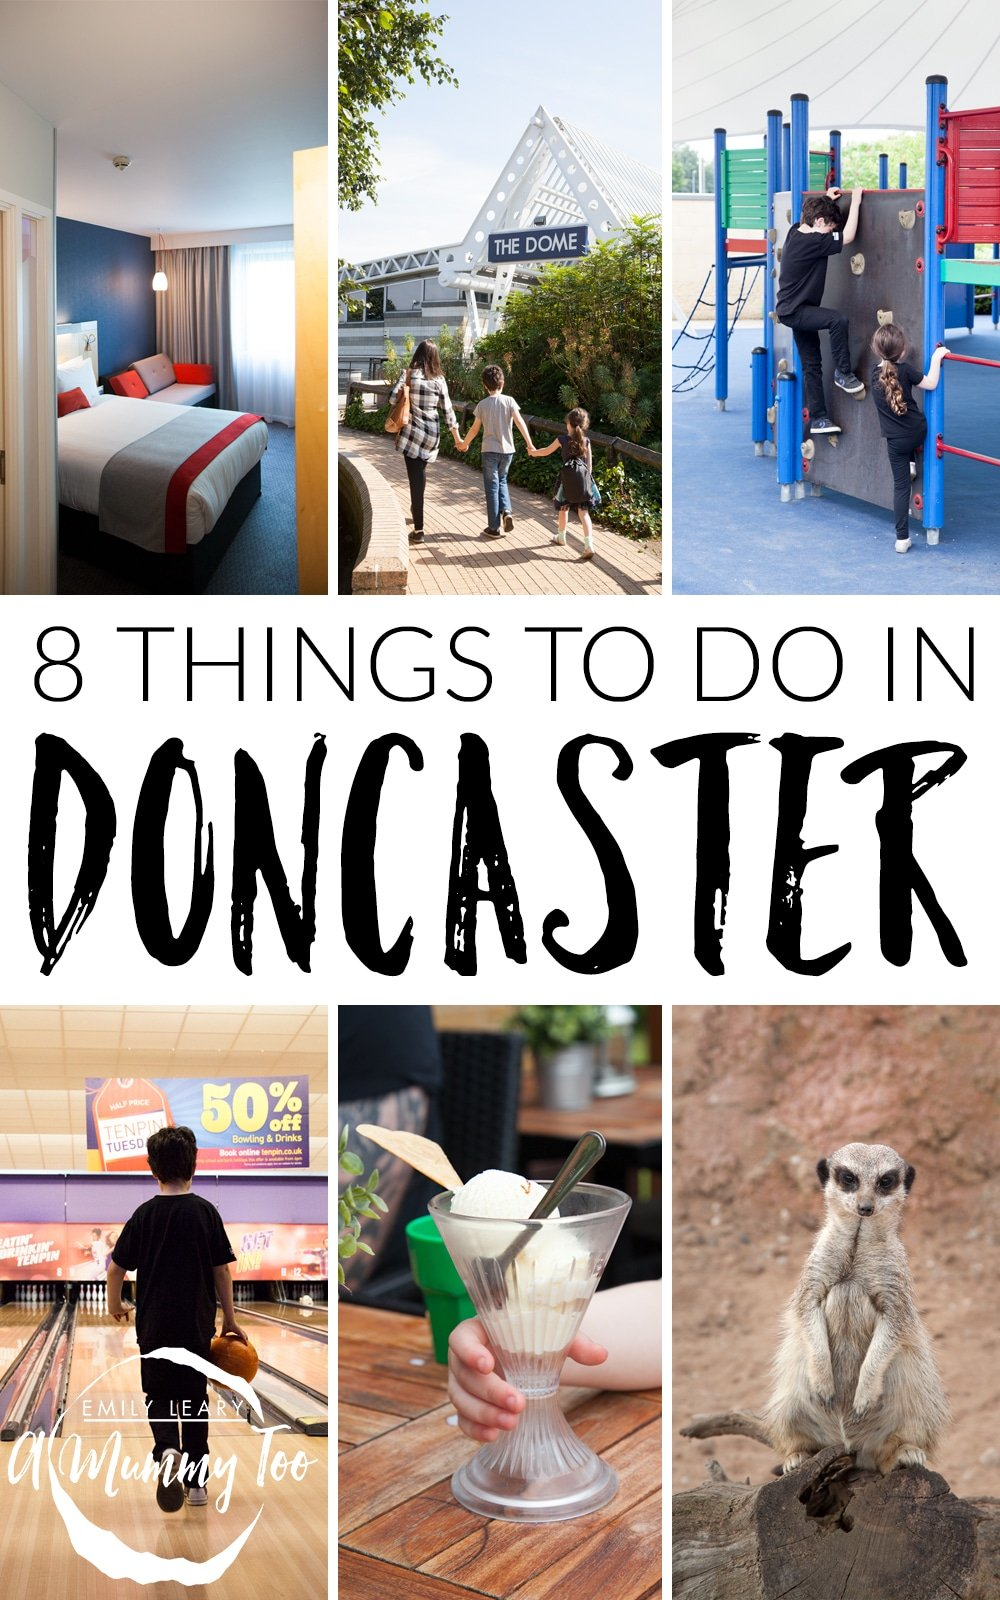 A Family Weekend Exploring What Doncaster Yorkshire Has